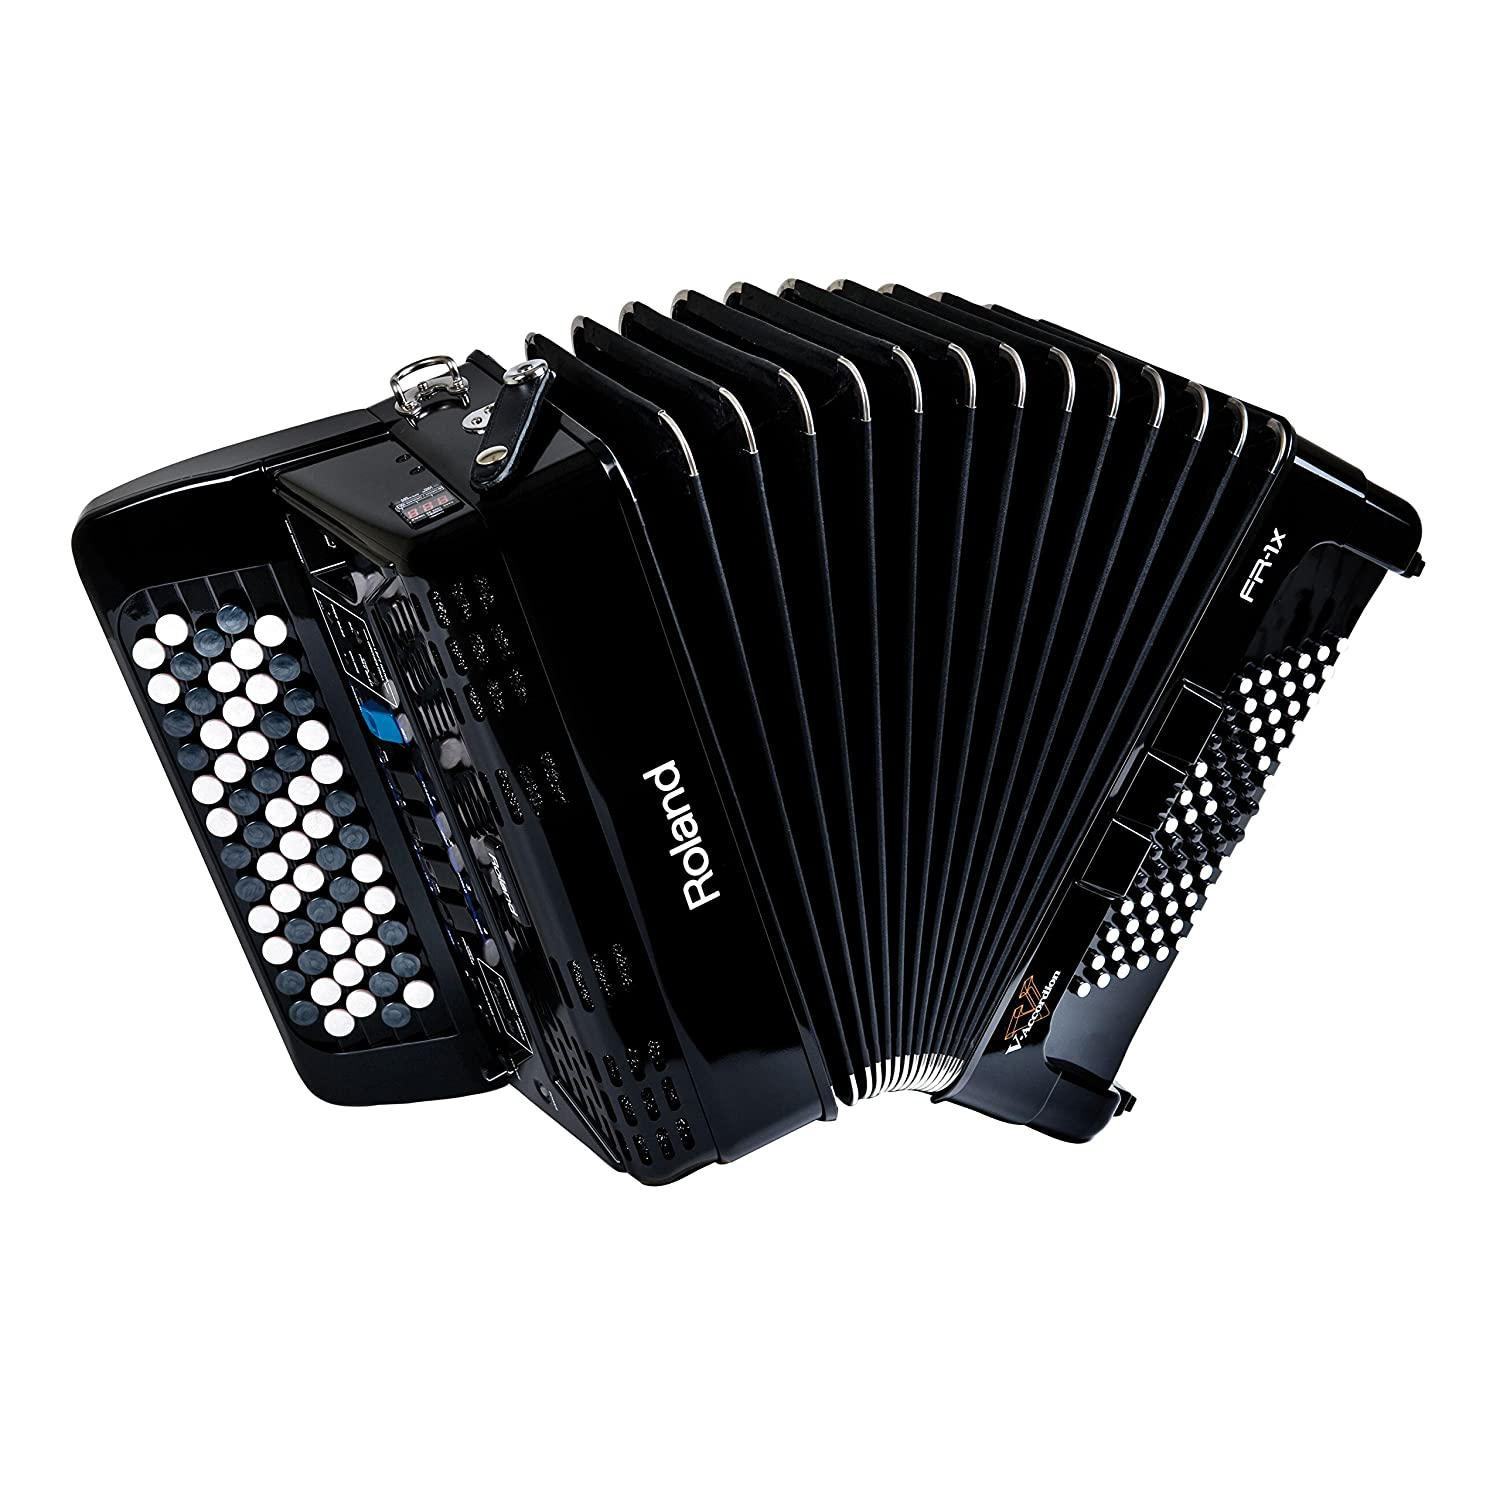 Roland V-Accordion Lite with 62 Buttons and Speakers, black (FR-1XB-BK)